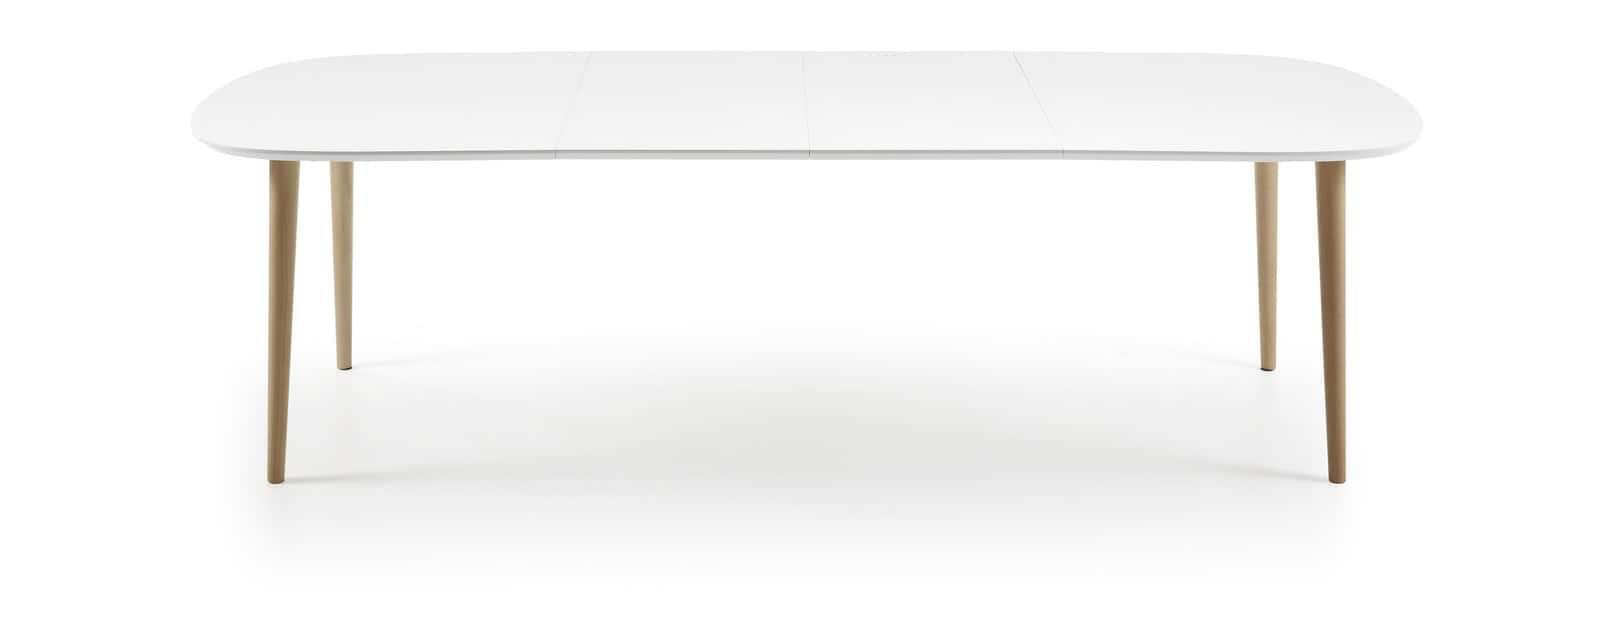 La Forma Oakland 160 Extending Dining Table - White